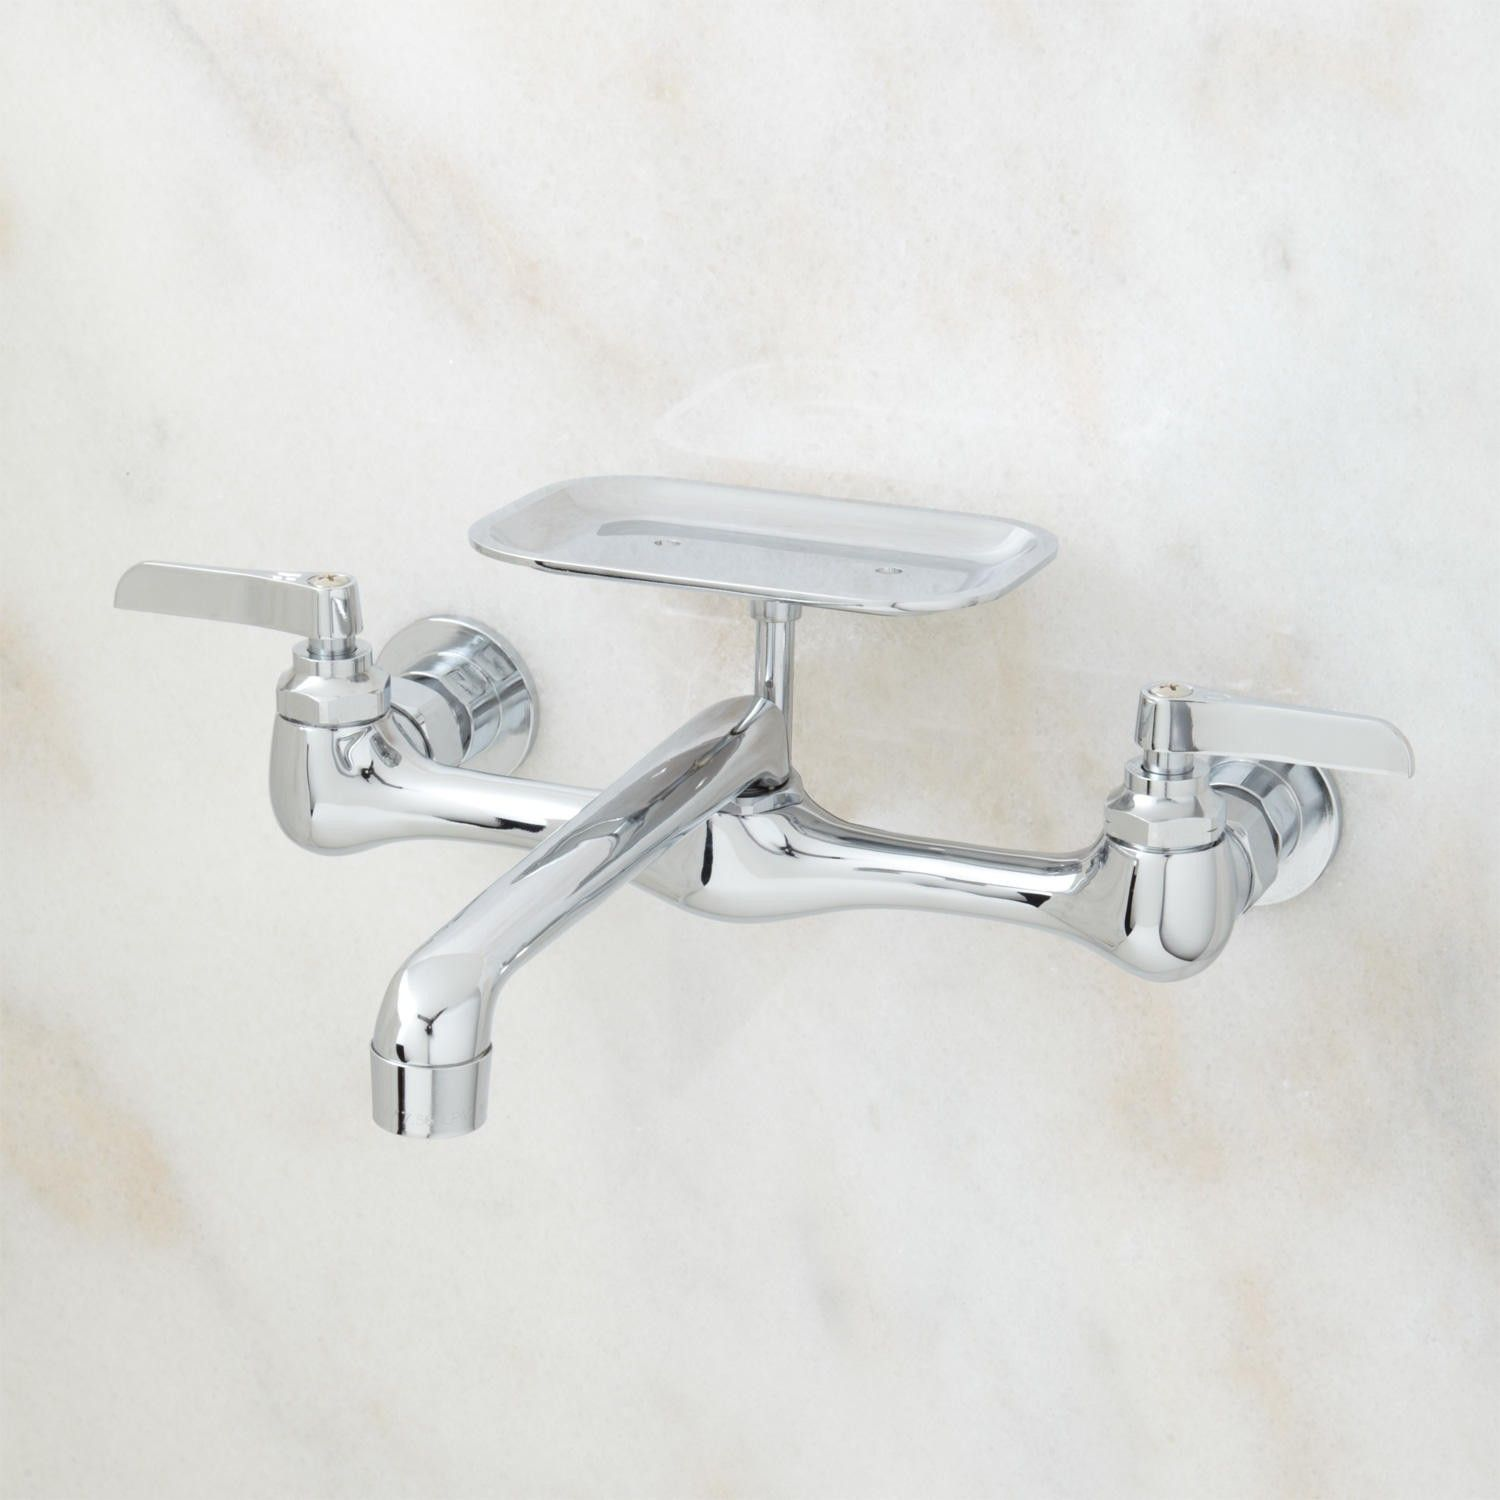 commercial wall legs laundry of sink faucets picture sinks and mount beautiful utility